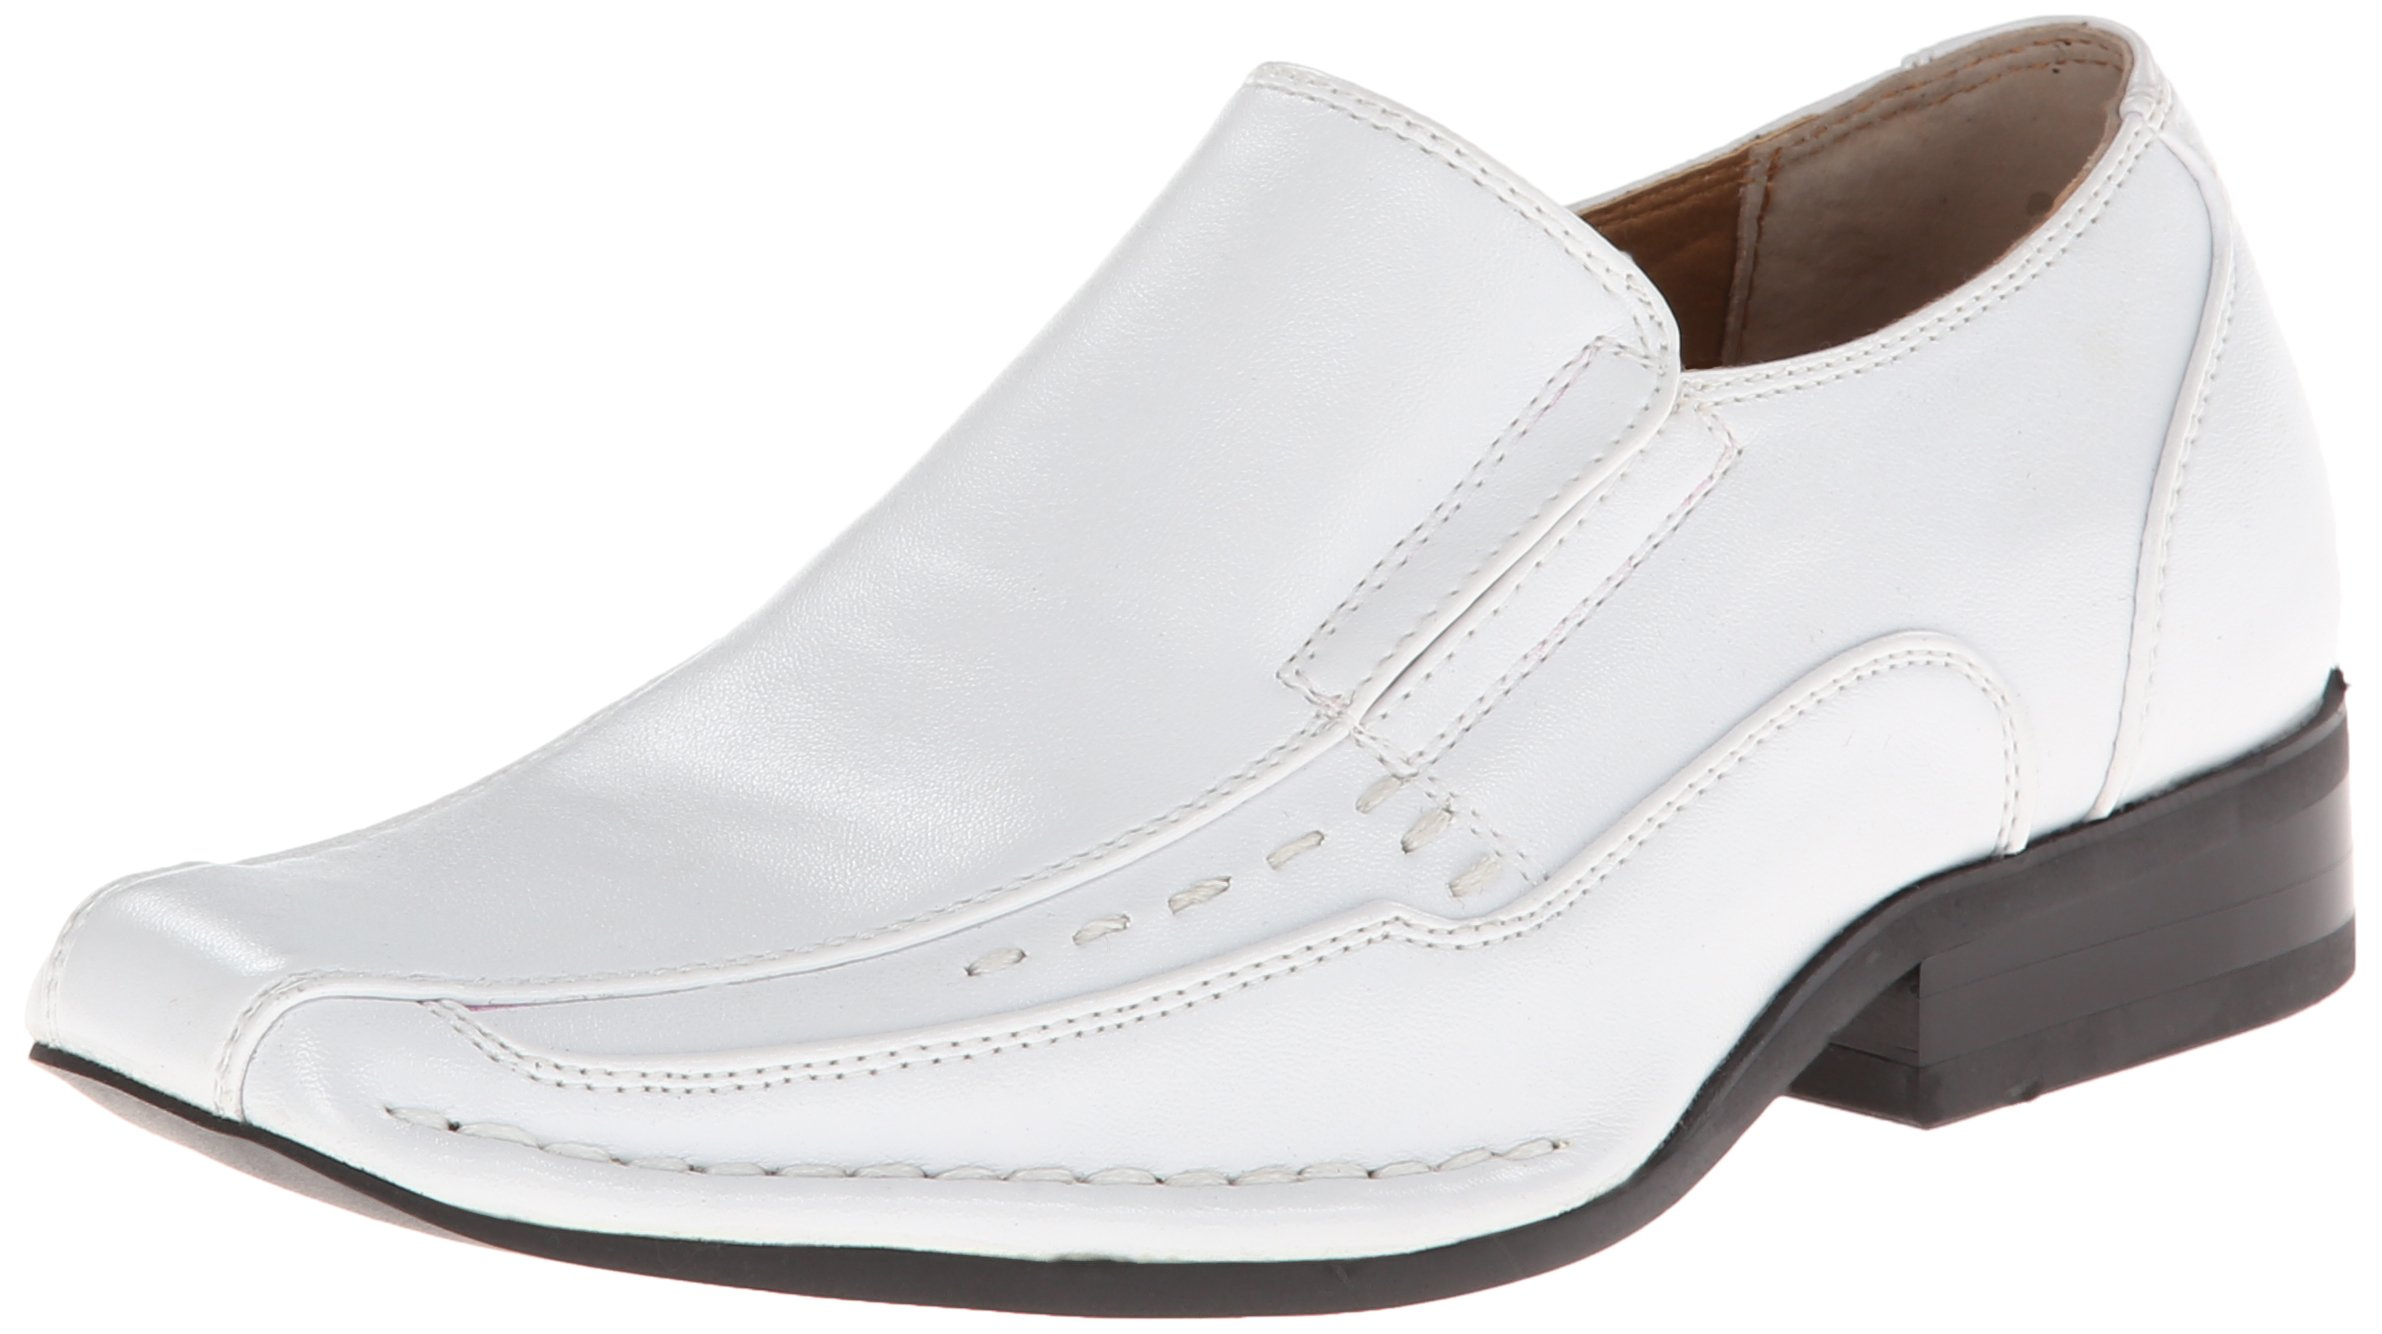 Stacy Adams Templin Bicycle Toe Slip-on Uniform Dress Shoe With Double Elastic Side Gore (Little Kid/Big Kid),White,11.5 M US Little Kid